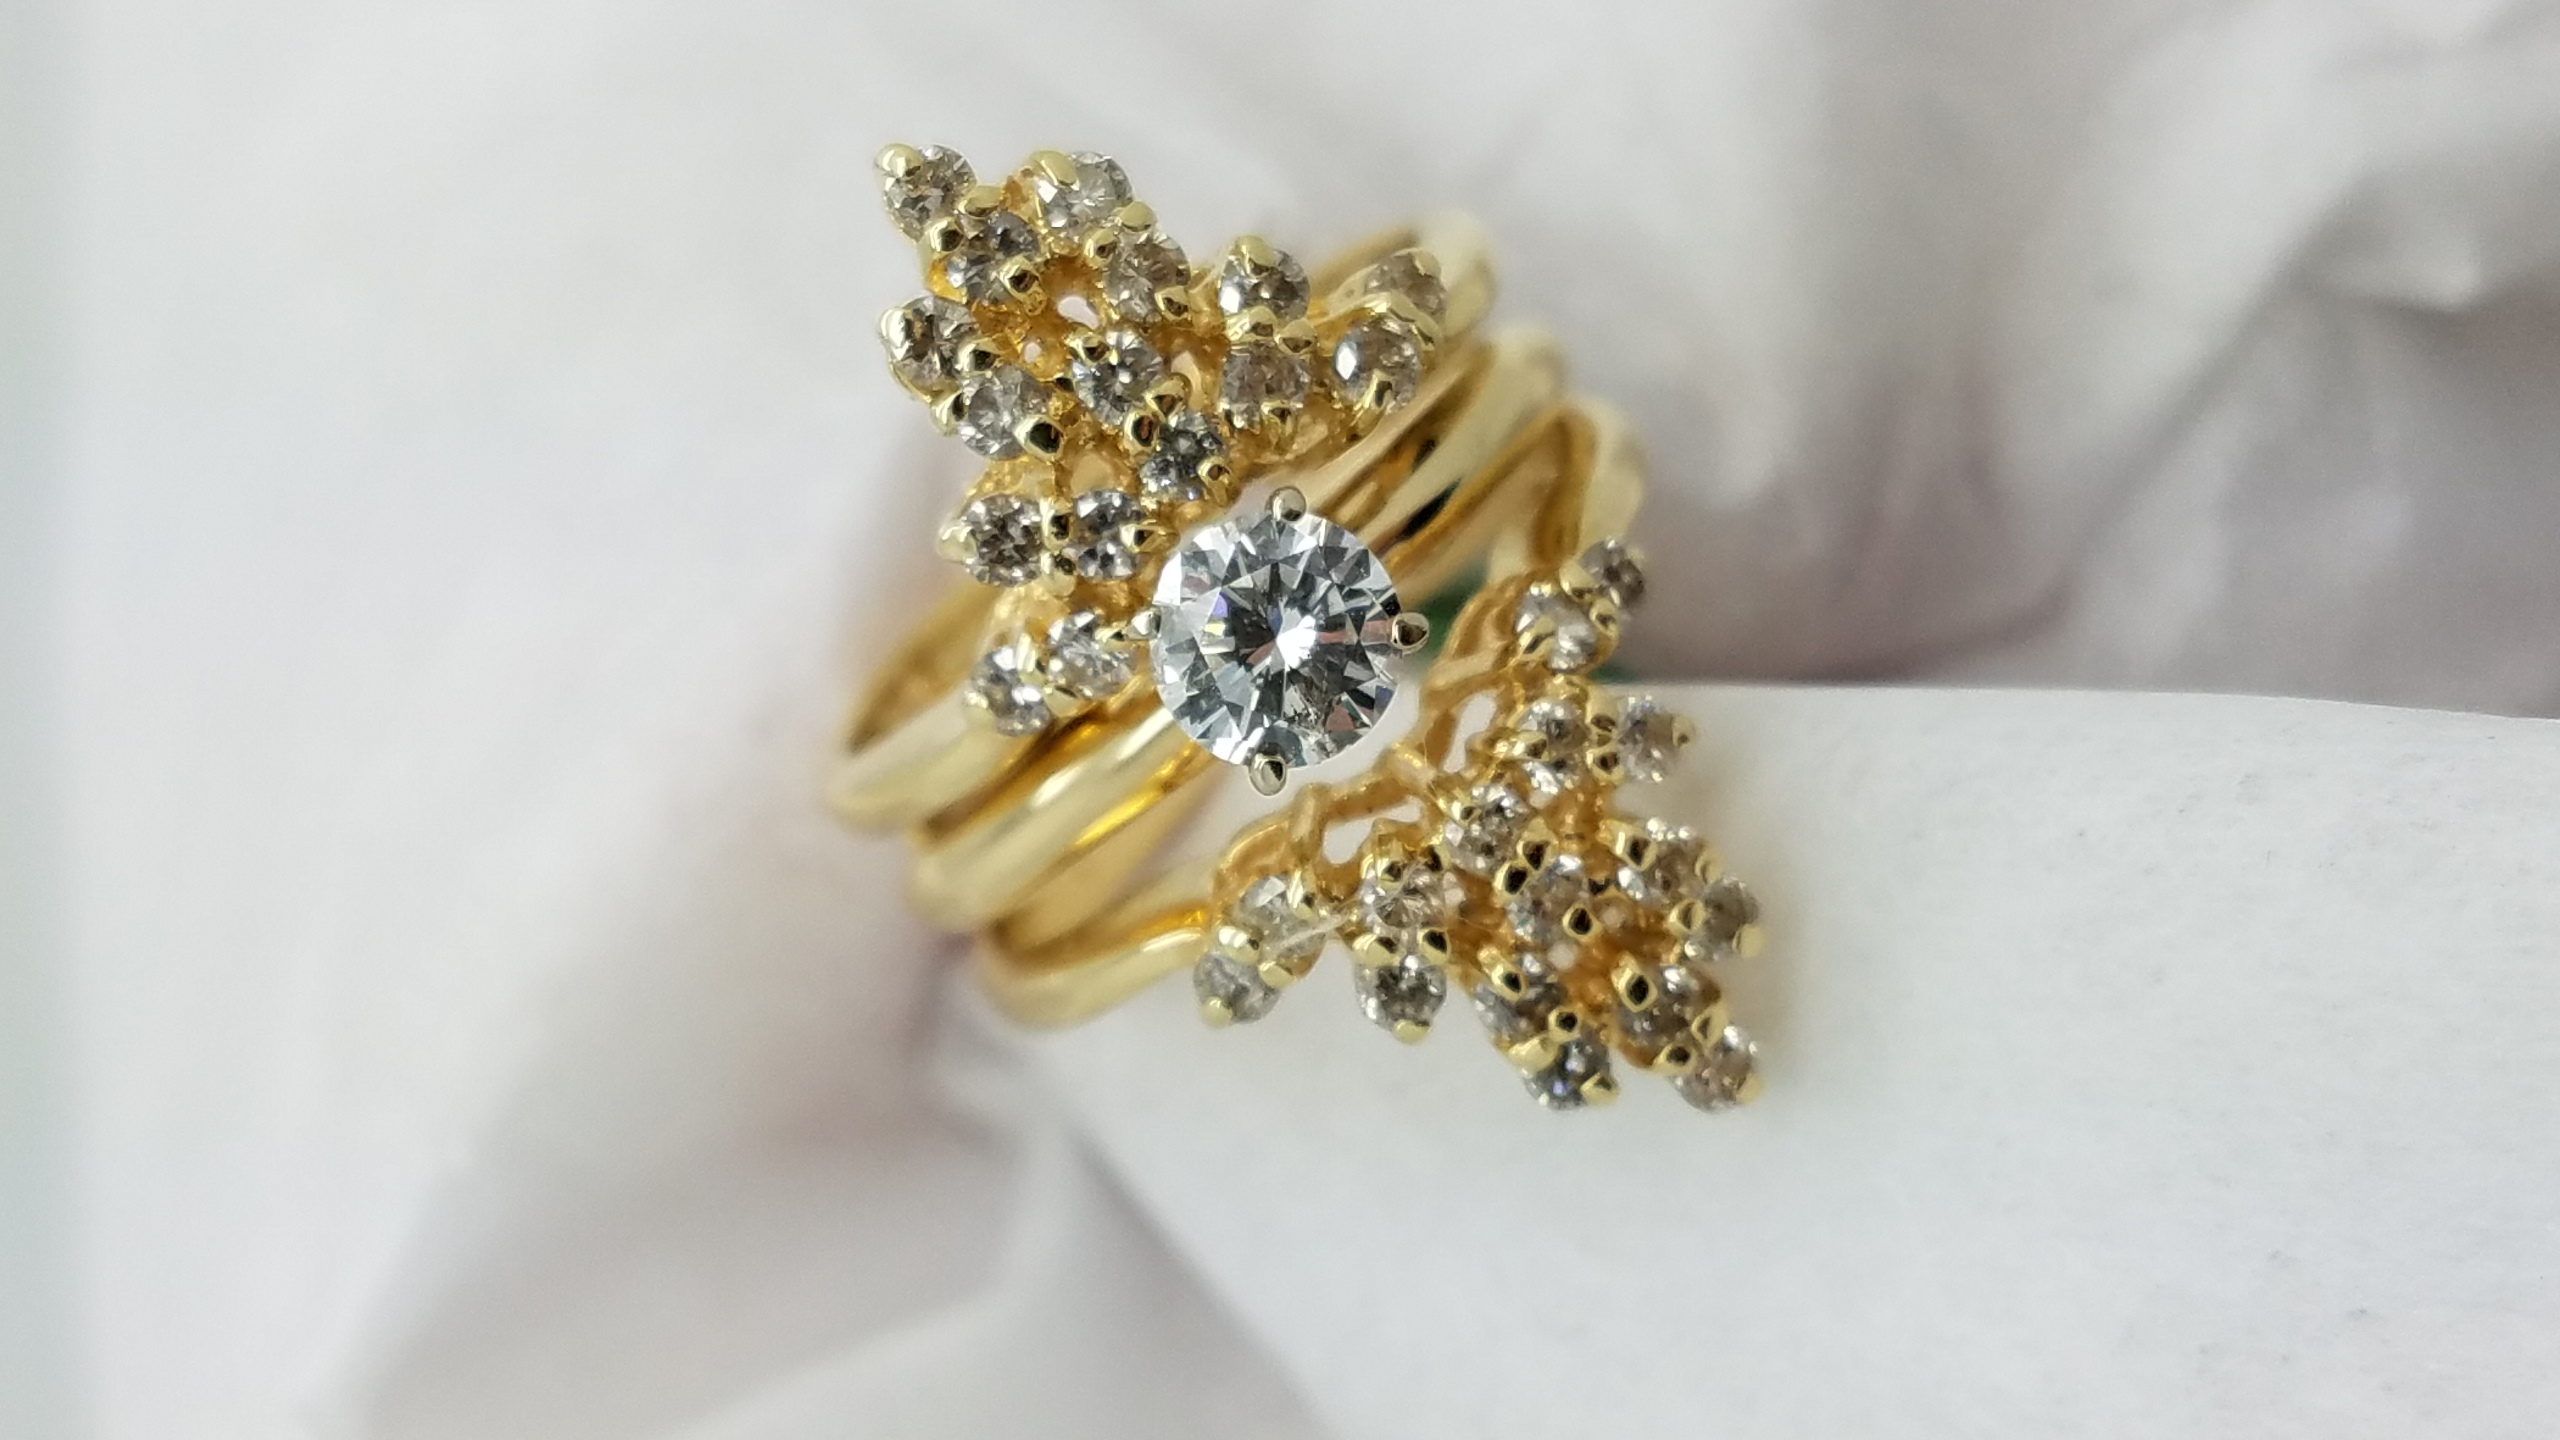 14K	Yellow Gold	Floral jacket	1.20	ct.	Round	Cut	Diamond	4-prong	Solitaire with Accents		Engagement-Ring